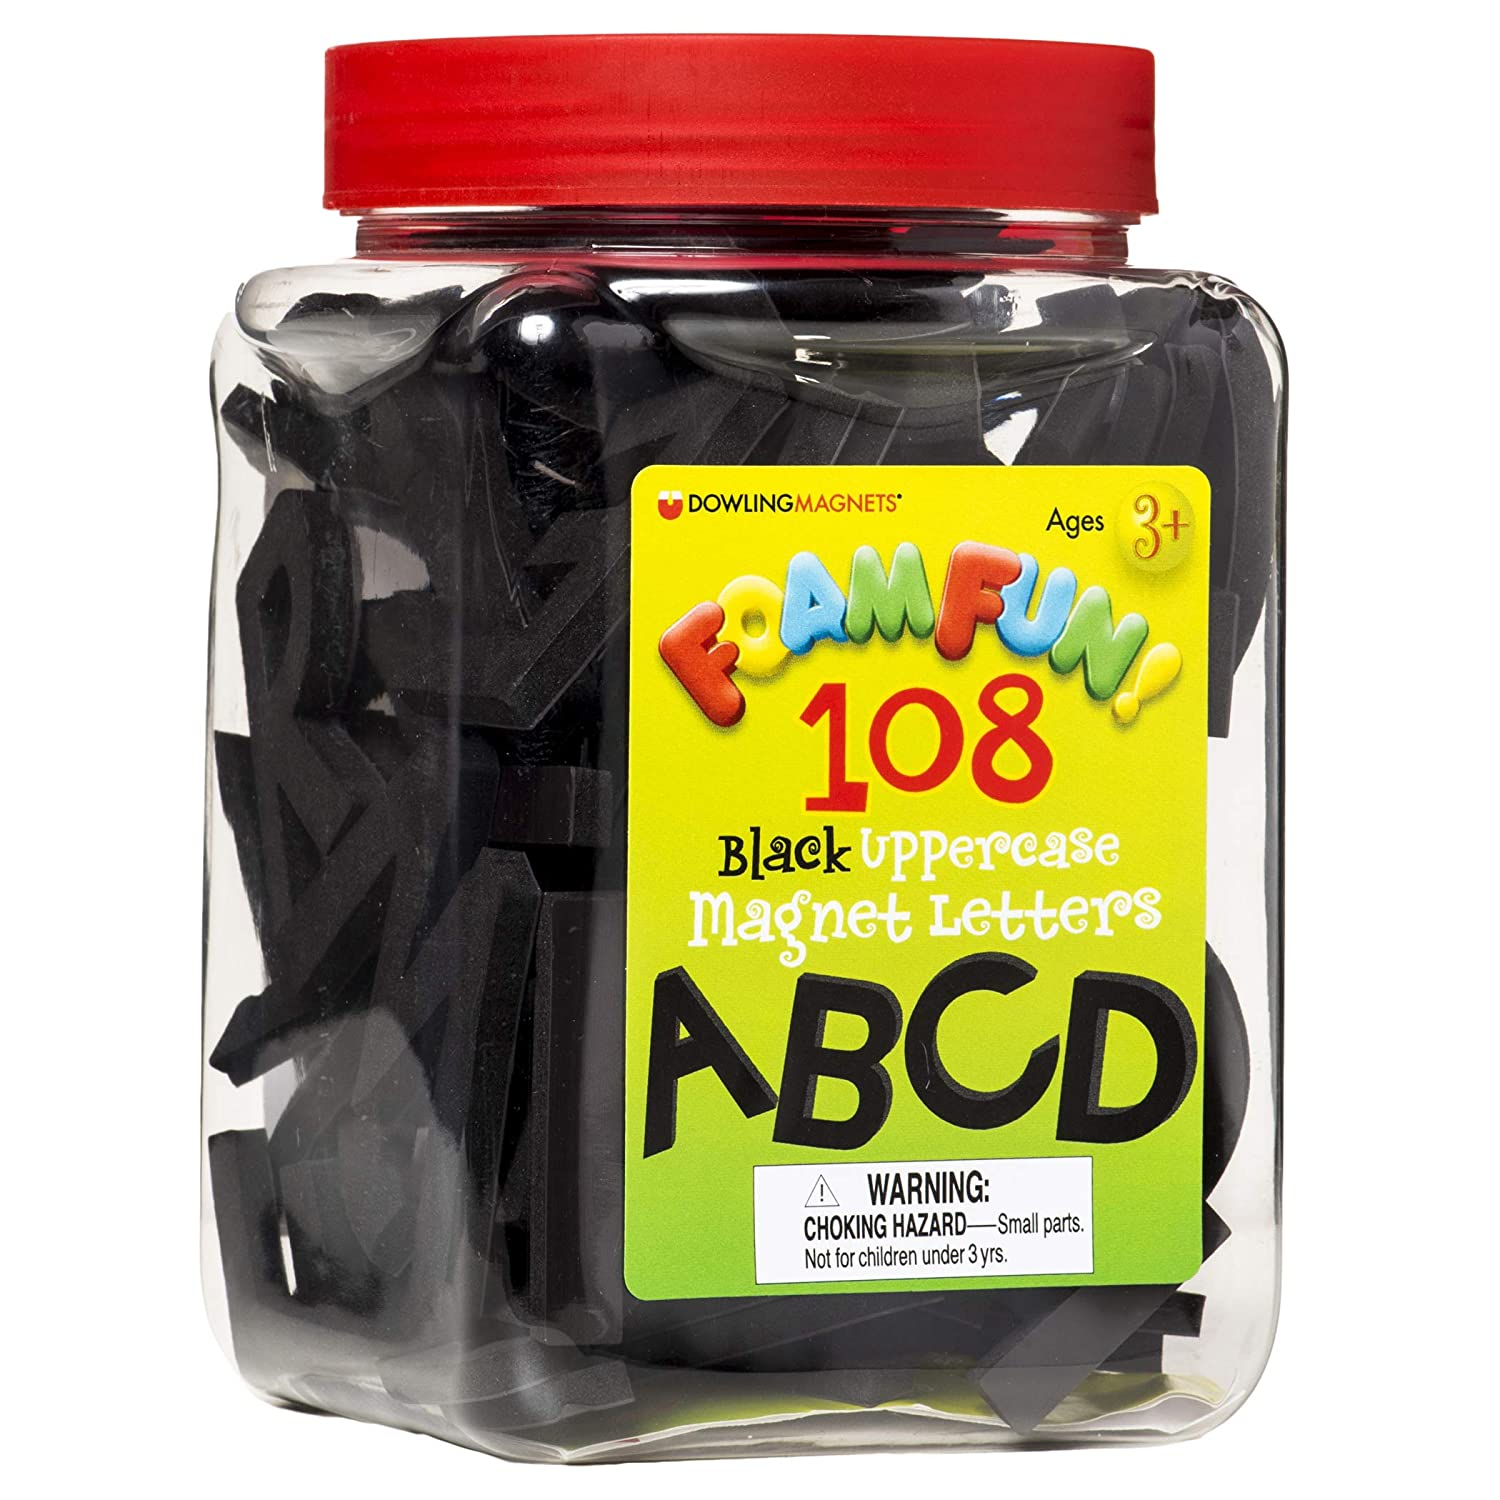 Dowling Magnets Foam Fun Max 59% OFF Black 1-2 Uppercase Letters Limited Special Price inc Magnet